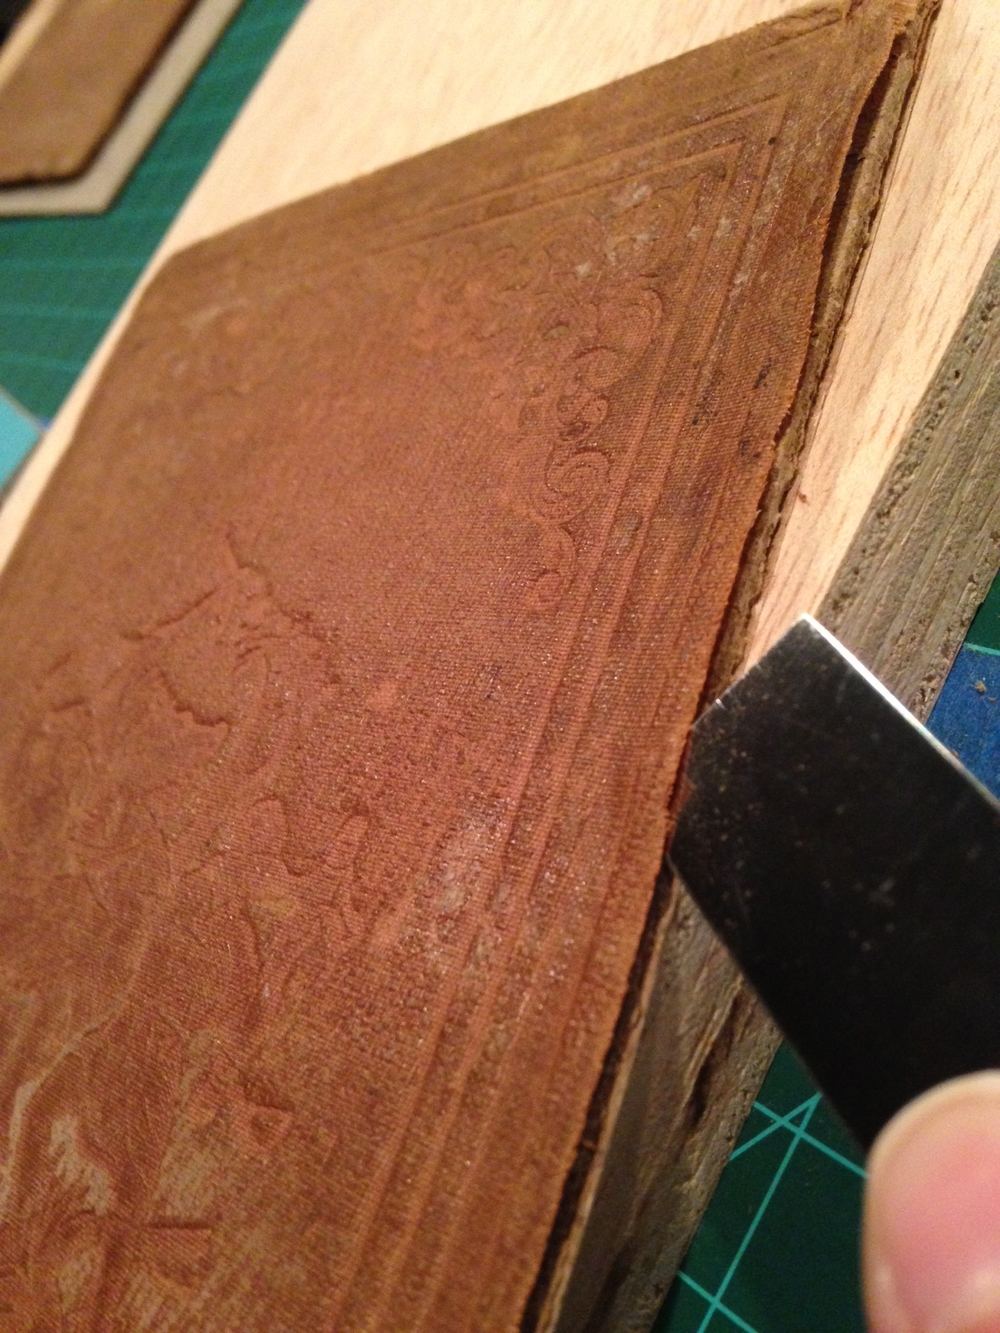 Then I was able to use the paper knife in semicircular motions to continue lifting the material further away from the board edge